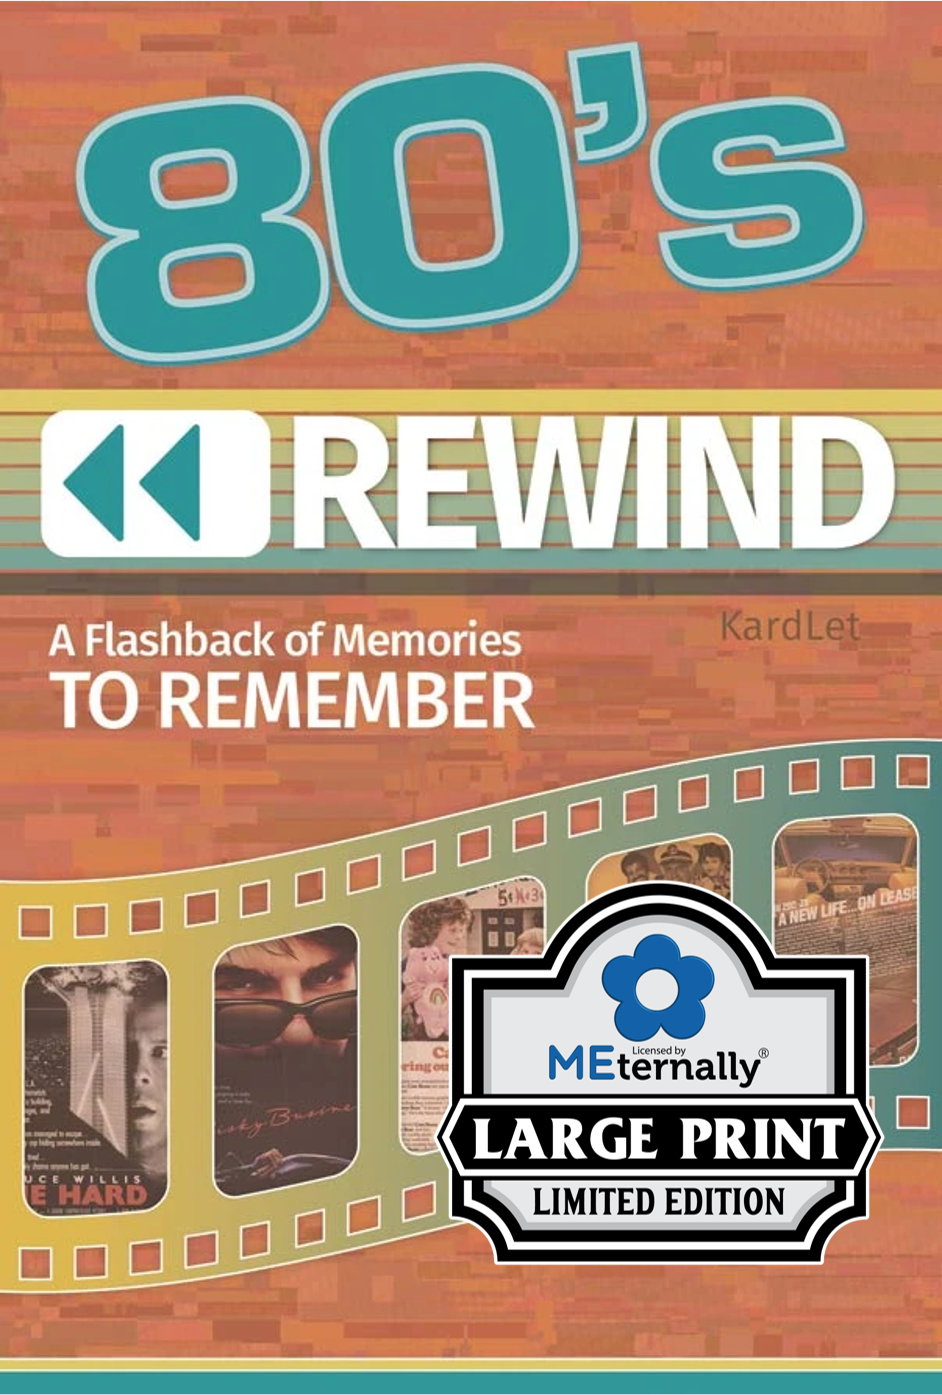 1980s Rewind Decade Kardlet - Preorder (Ships by Jan 30th)